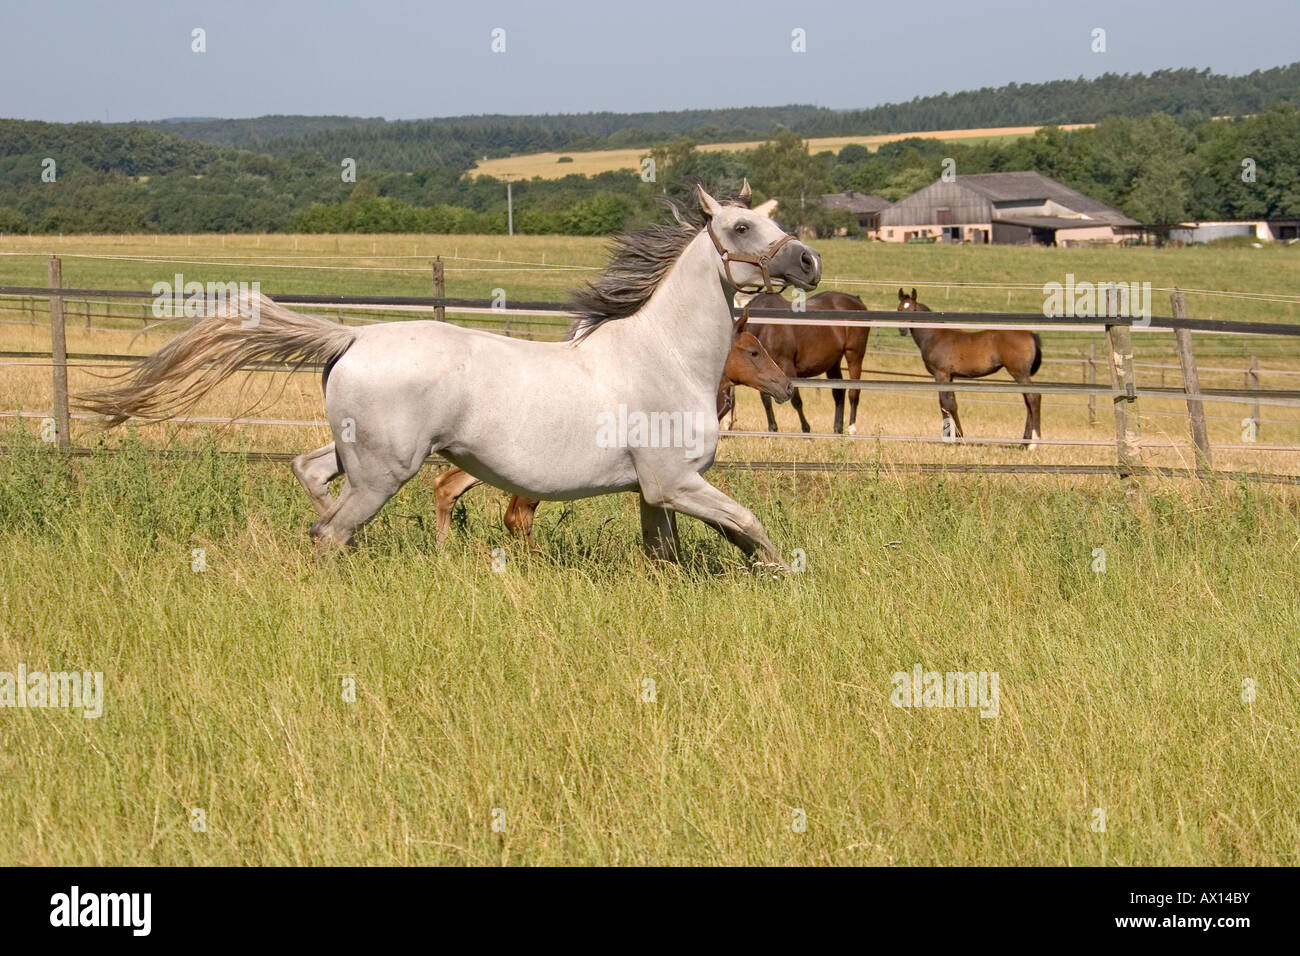 White mare and foal galopping through meadow, Vulkaneifel, Germany, Europe - Stock Image